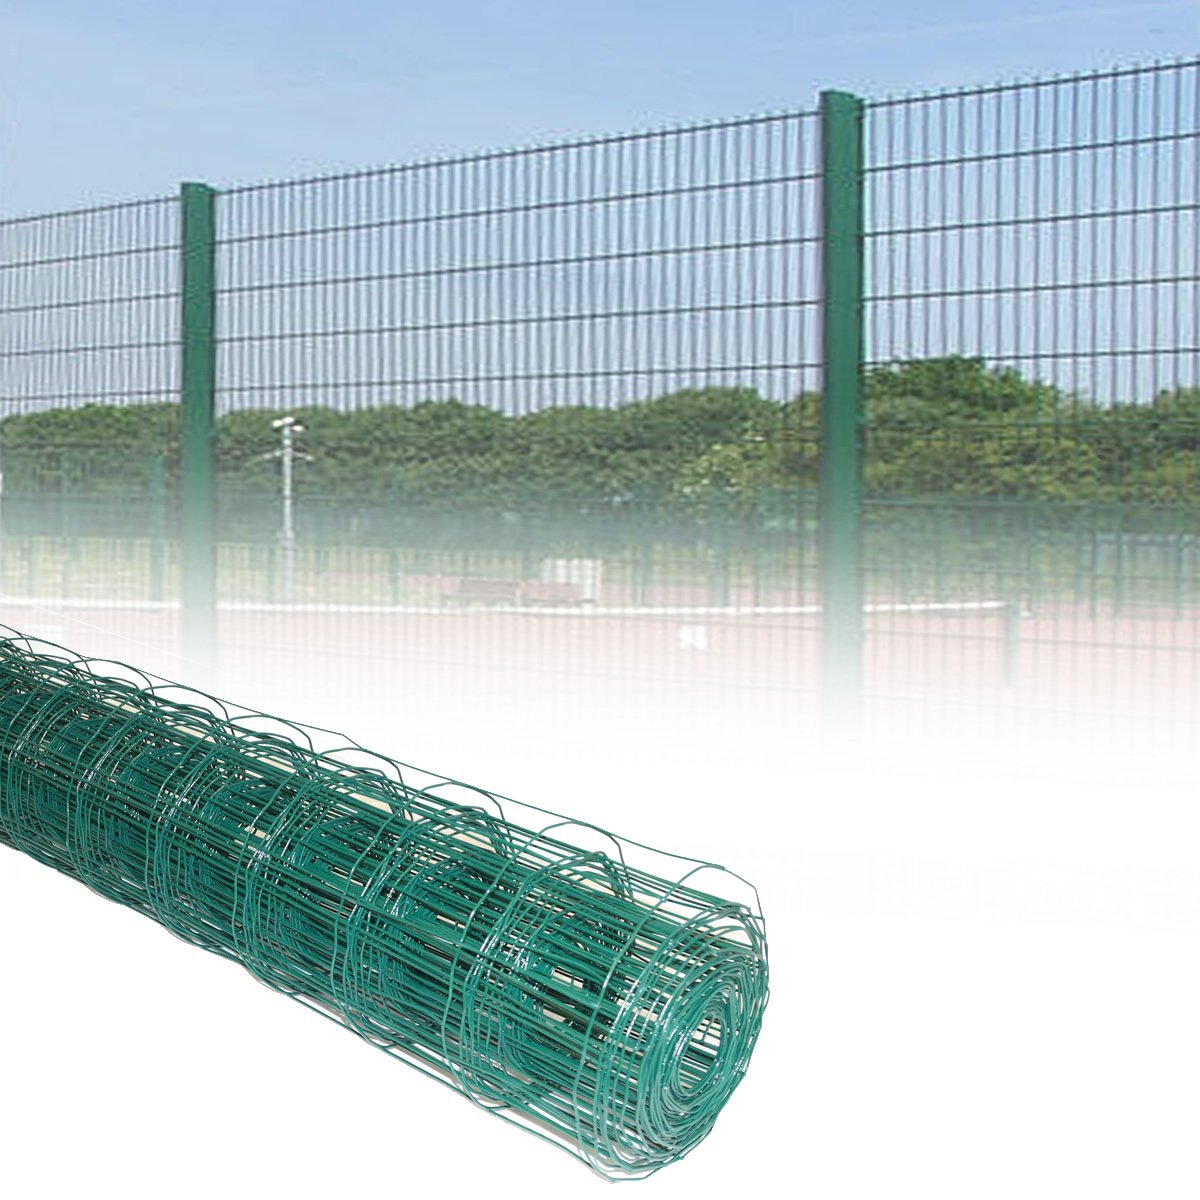 Steel Fencing: Amazon.co.uk